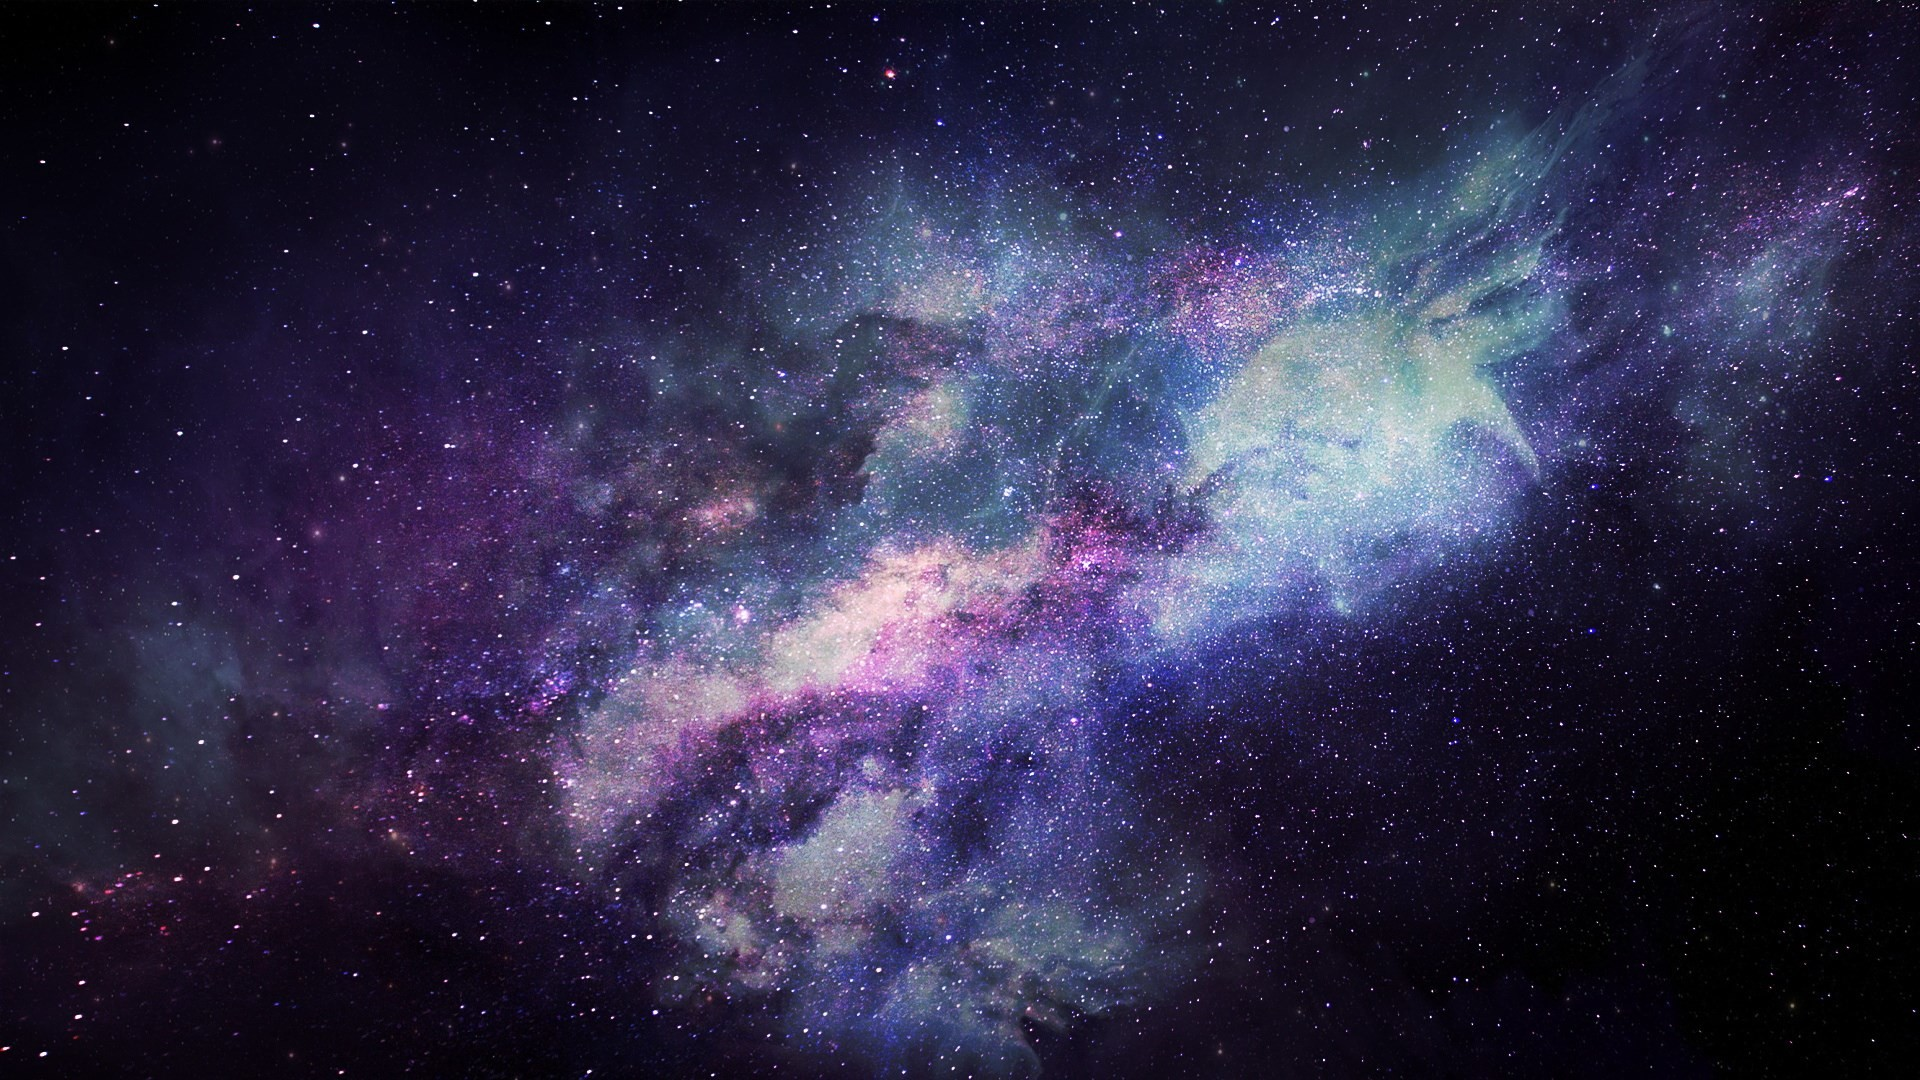 galaxy pc wallpaper backgrounds - photo #9